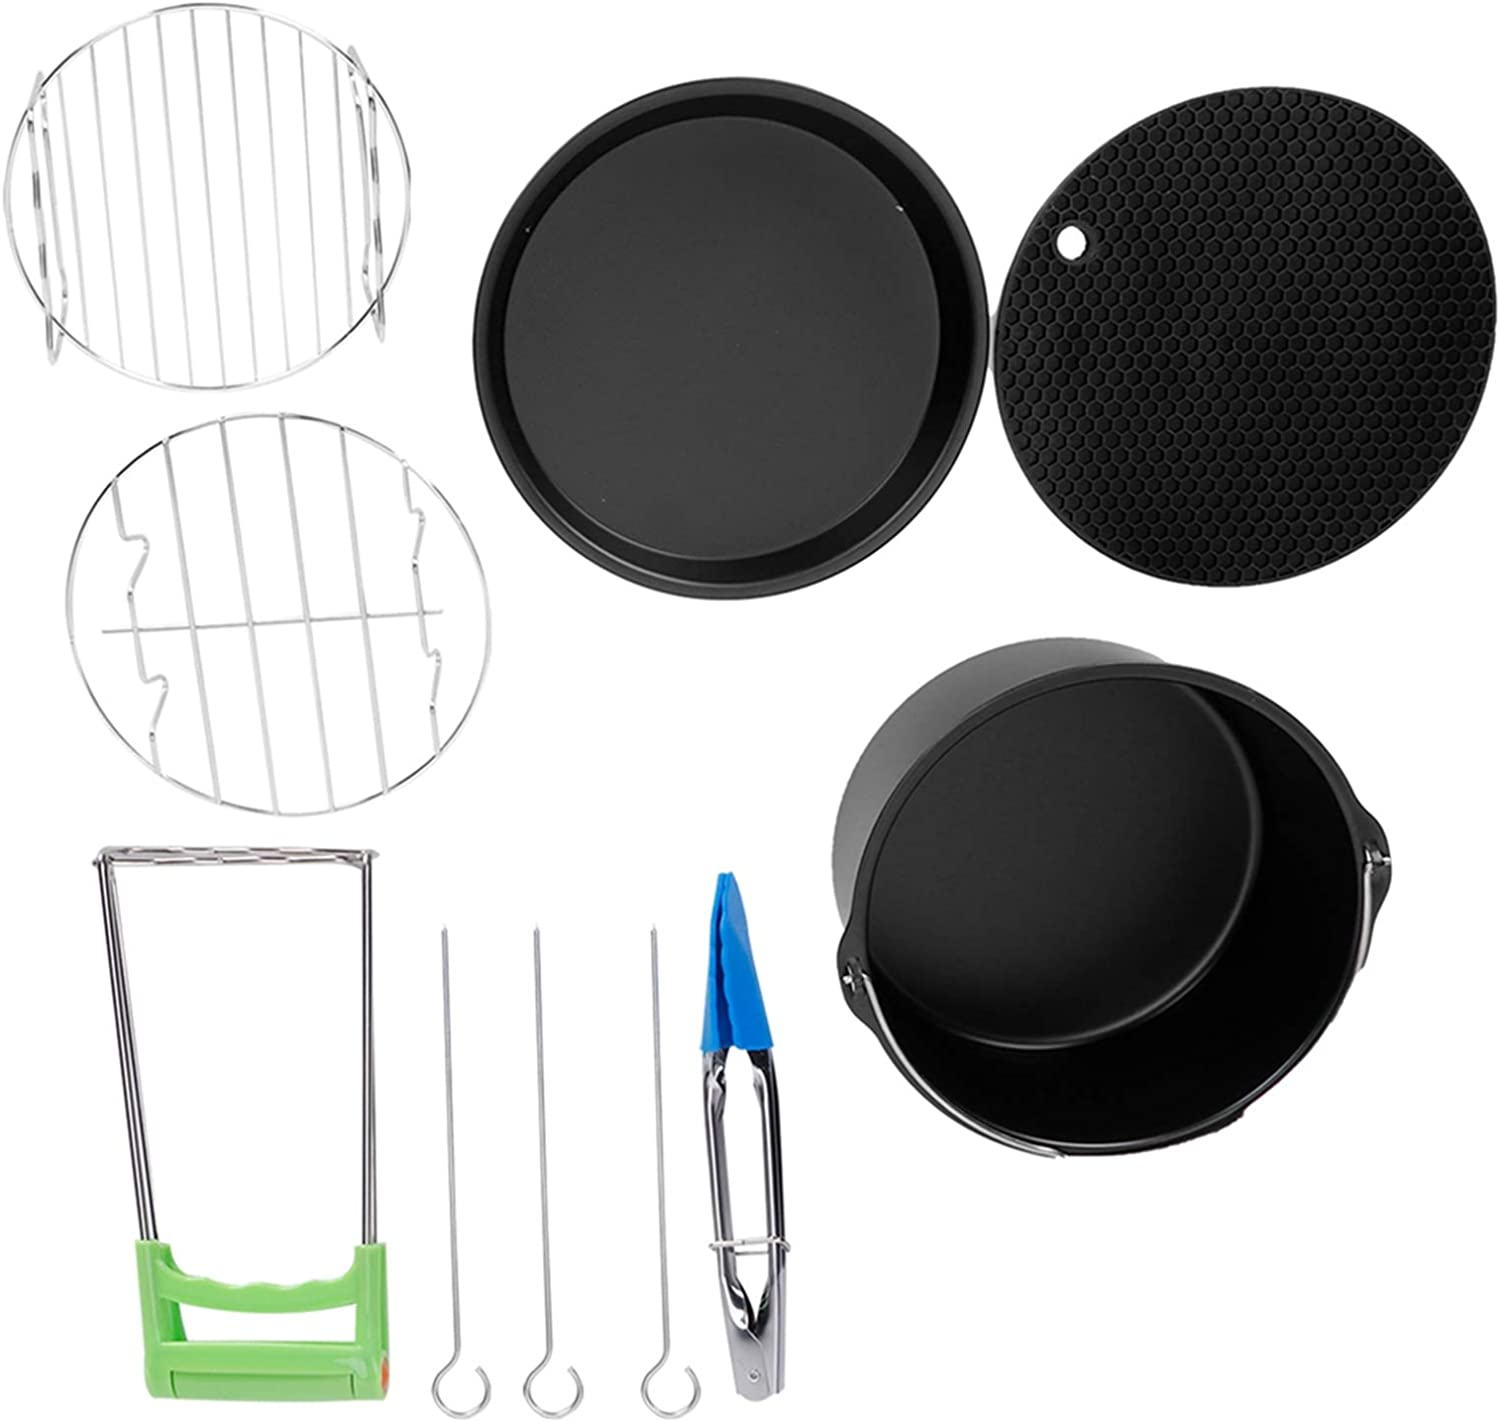 7 Inch Round Cake Pan Pizza Max 43% OFF Skewer Recommendation Mat Silicone Grill Baking